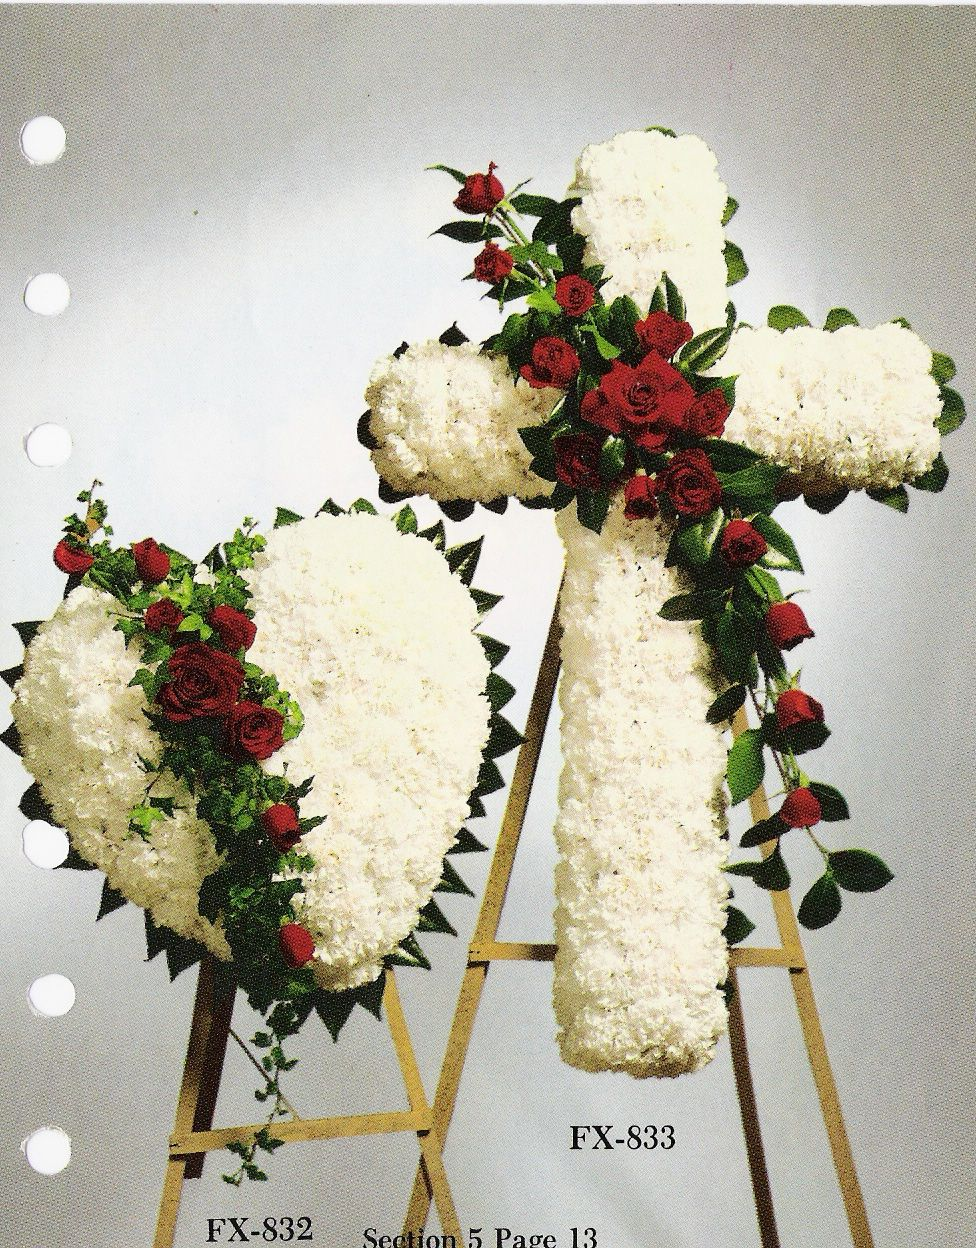 Flower arrangement for funeral google search funeral for A arrangement florist flowers